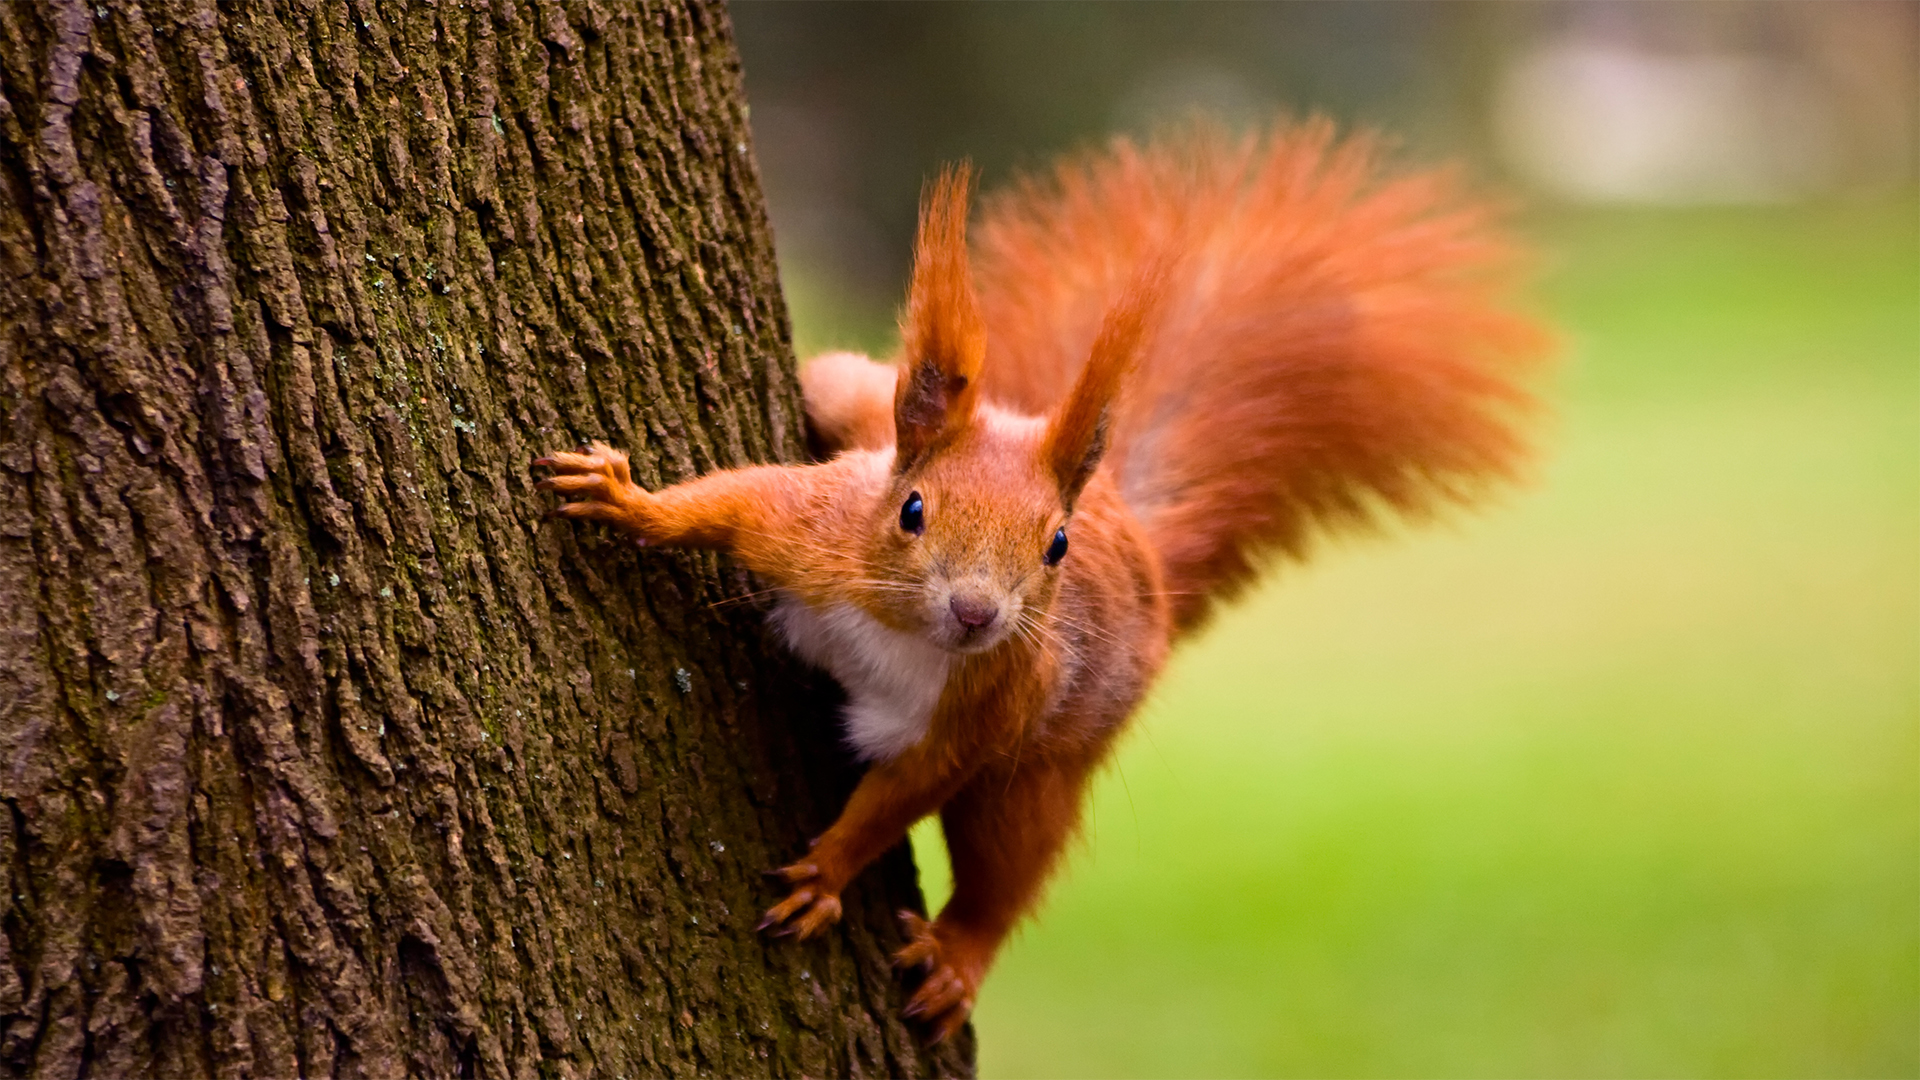 image from PBS program _Nature_ episode A Squirrel's Guide to Success, select to watch video